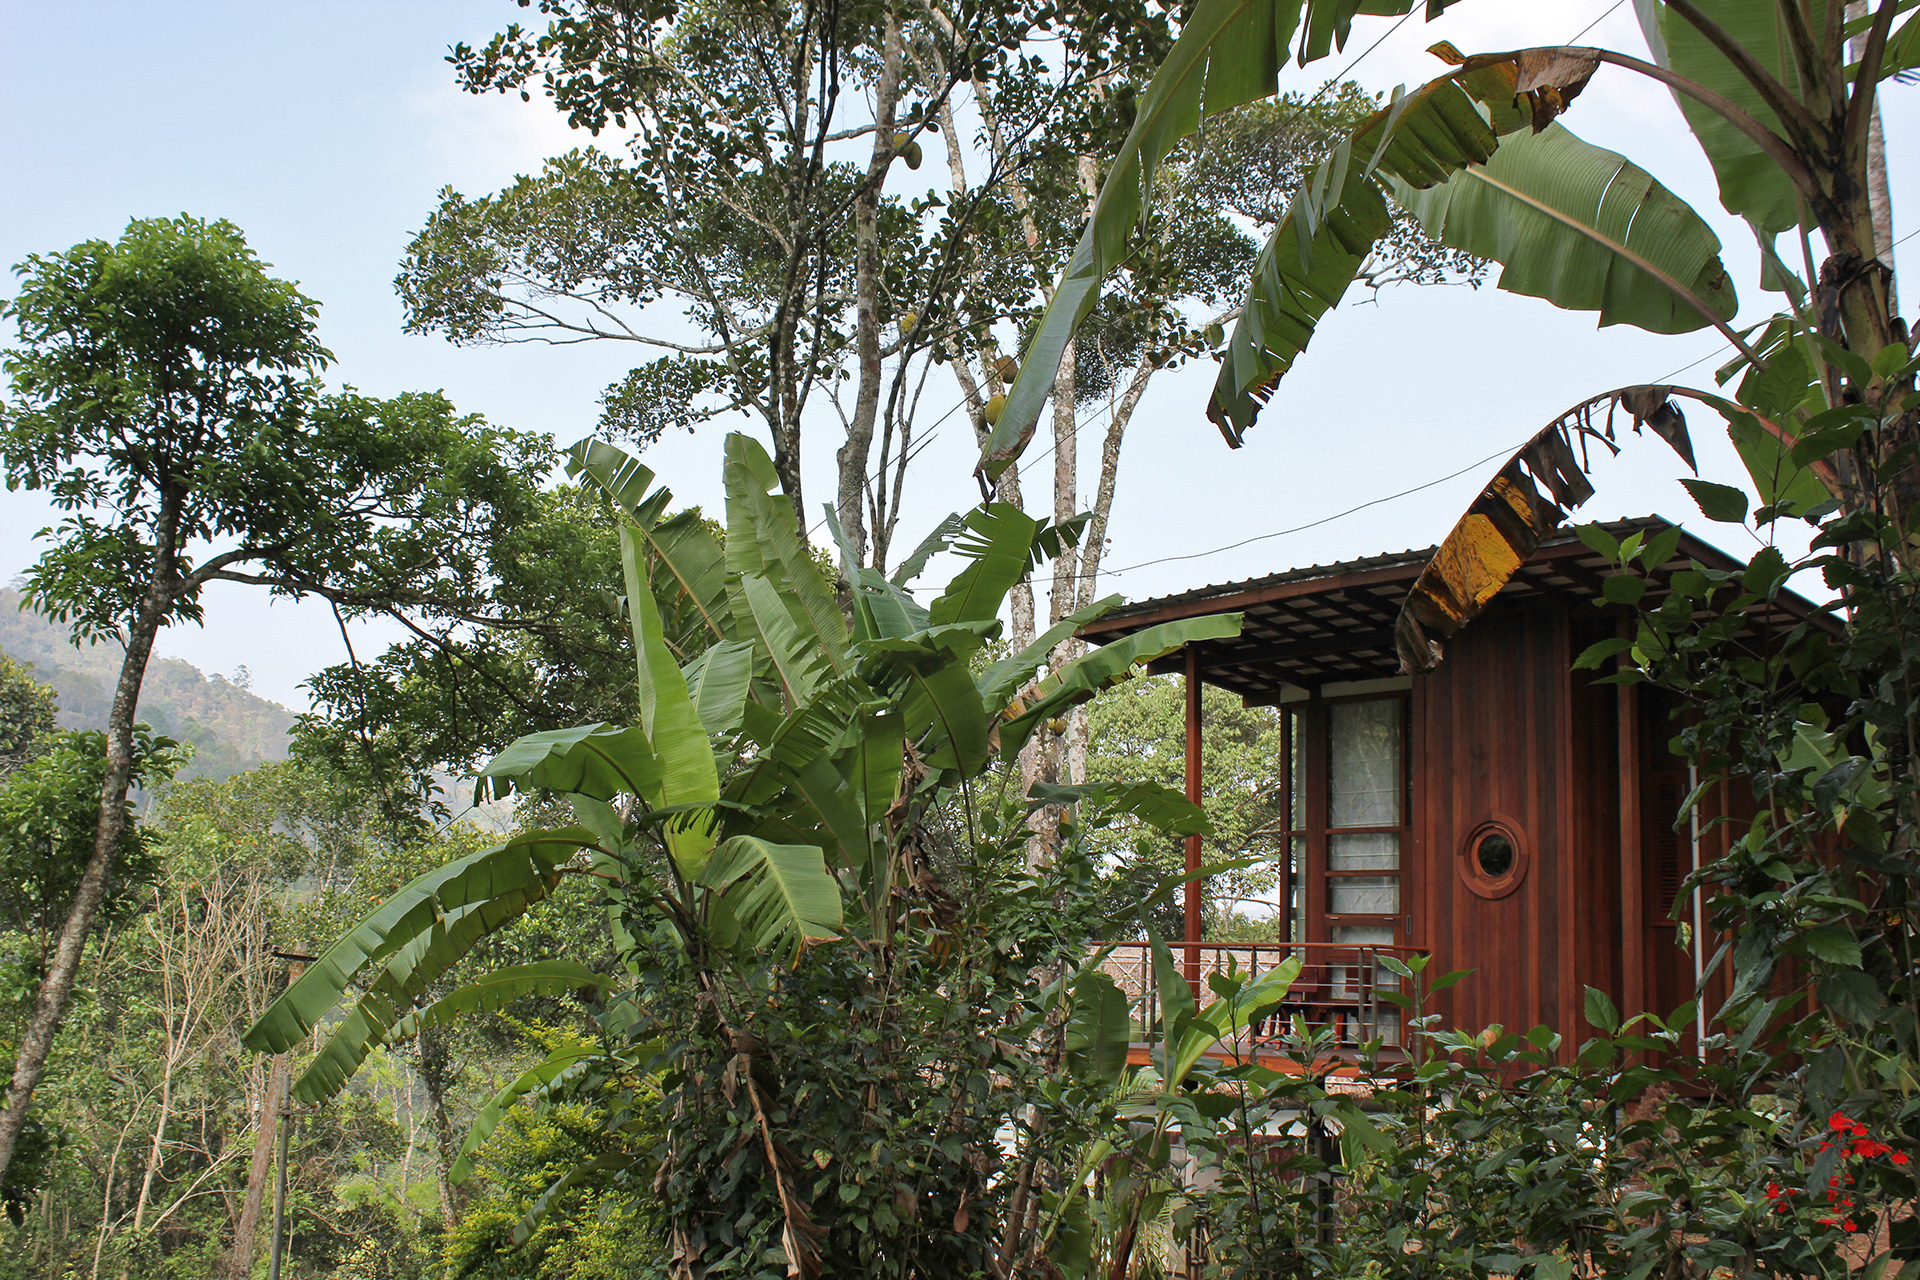 The cabins surrounded by trees and cardamom plantations | Cardomom Club| Kumar La Noce | Kerala | India | STIRworld